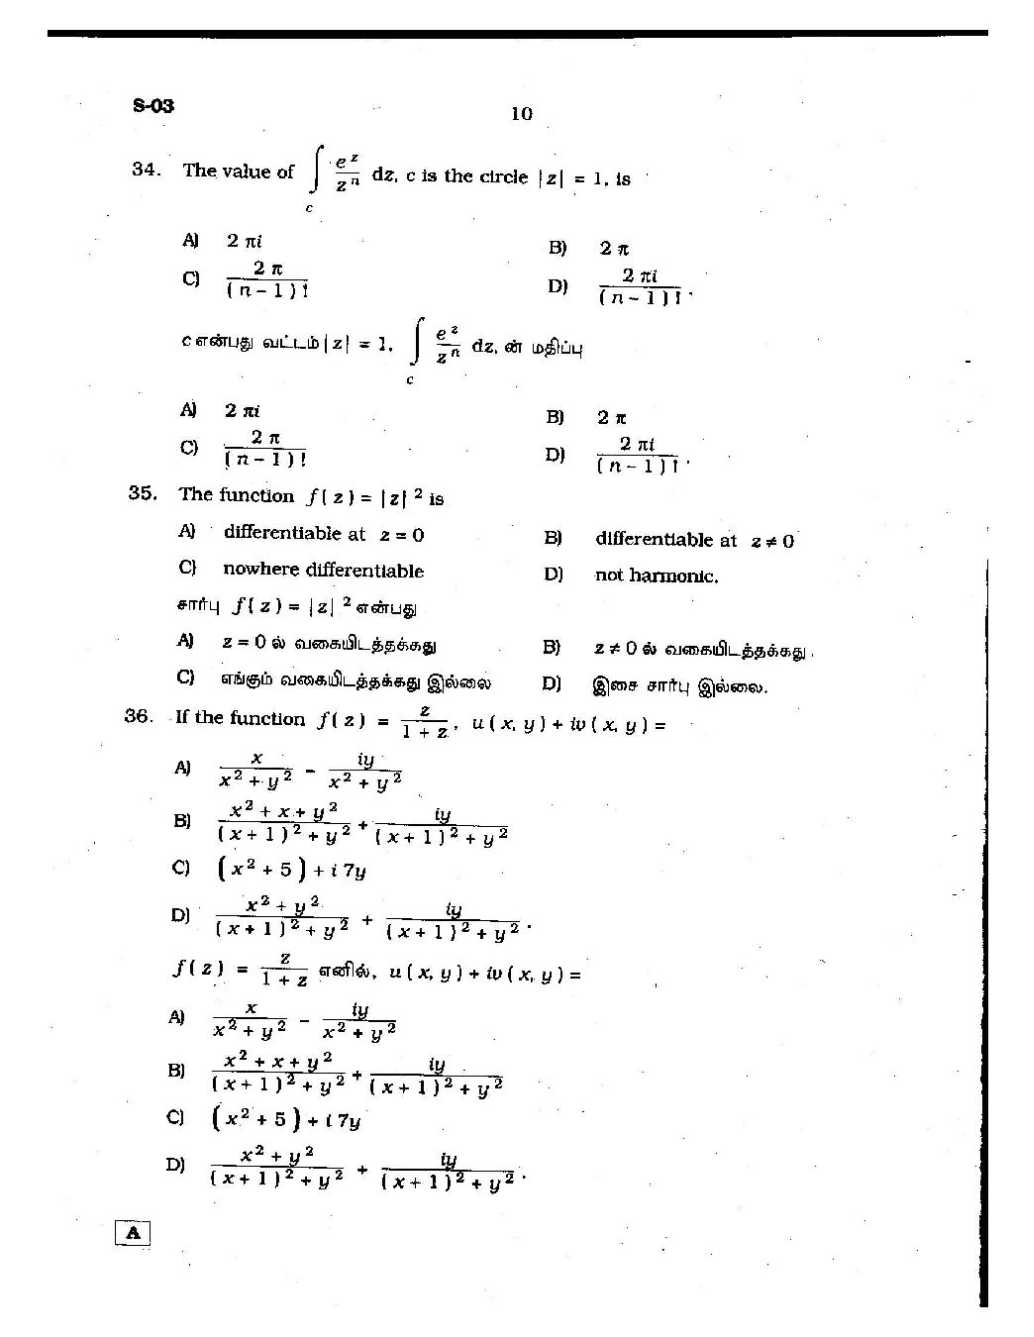 algebra essay questions Gre algebra - adding and subtracting equations in the course of solving some of the harder gre algebra questions, you'll be asked to add or subtract equations so.